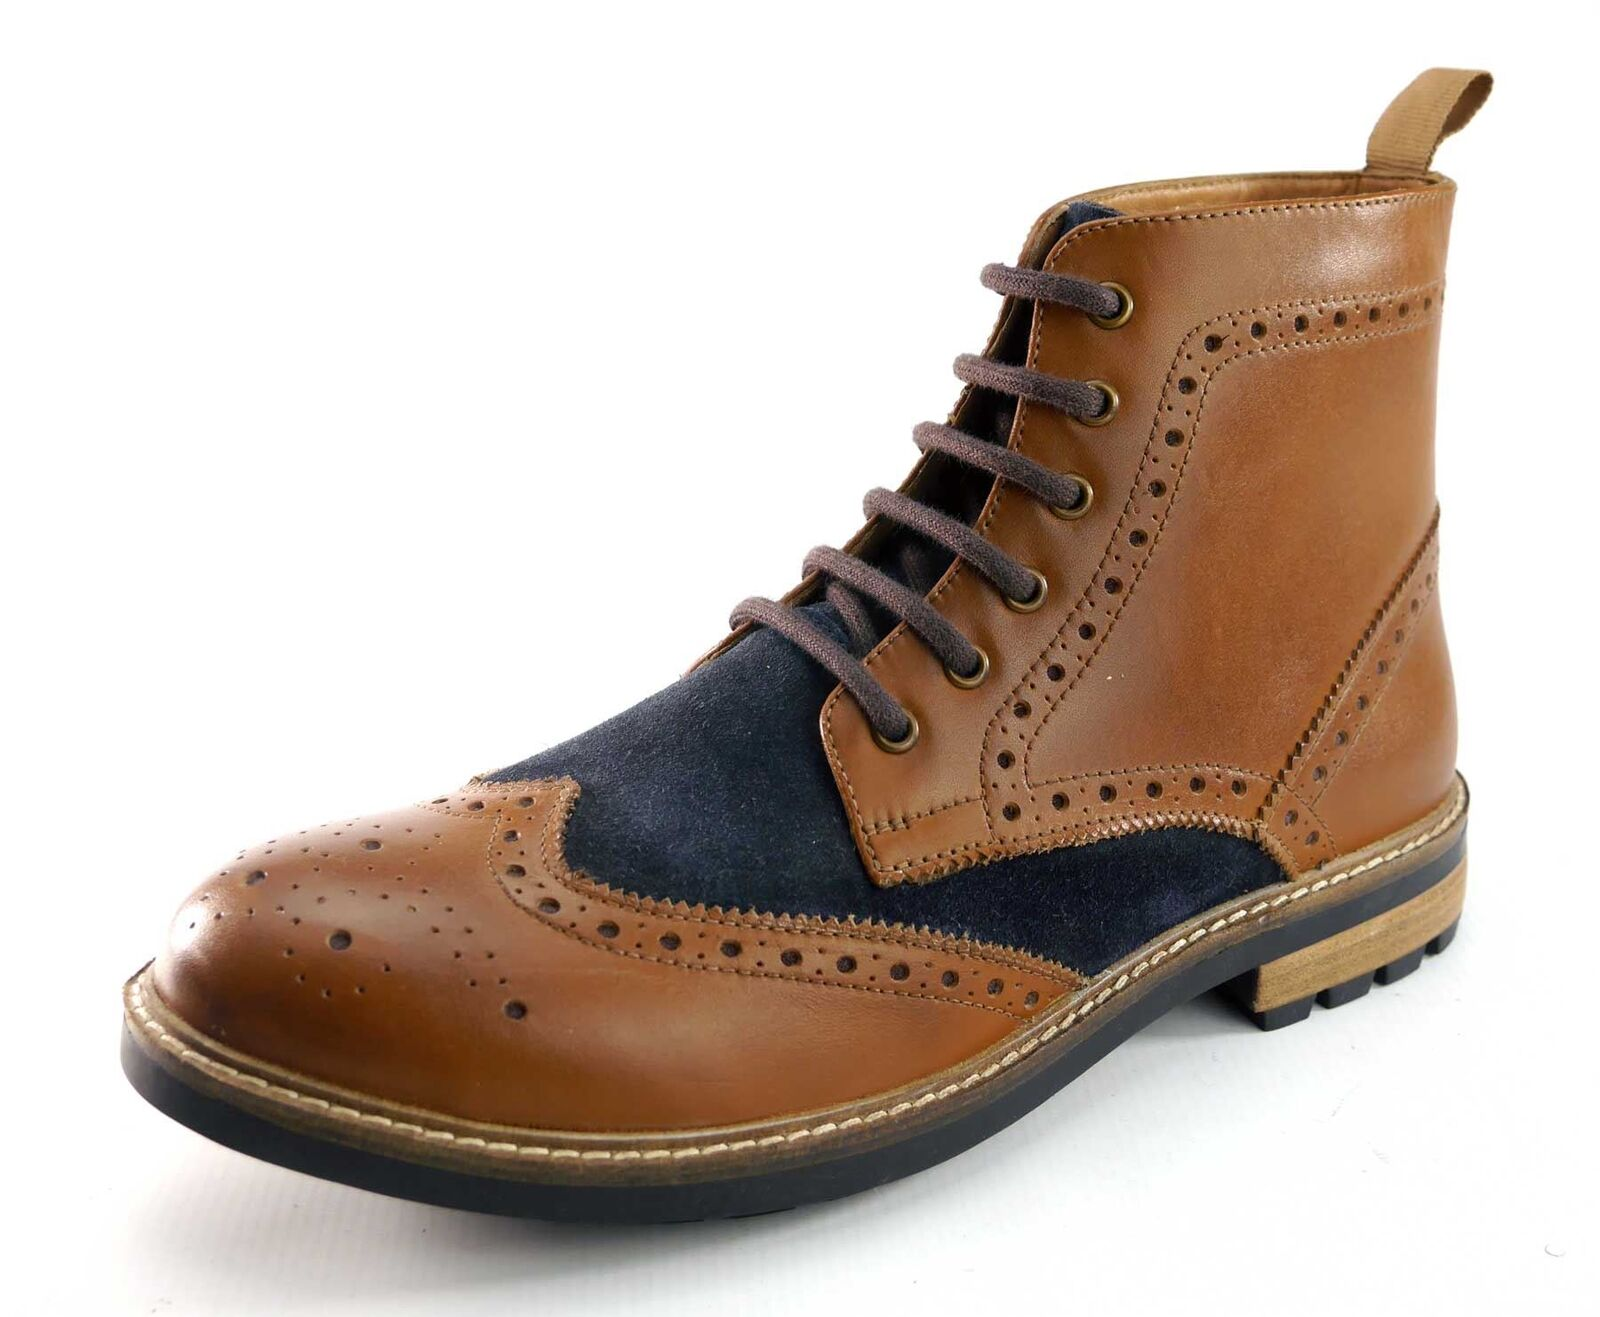 Frank James Hackney Mens Real Leather Lace Up Brogue Stiefel Tan   Navy